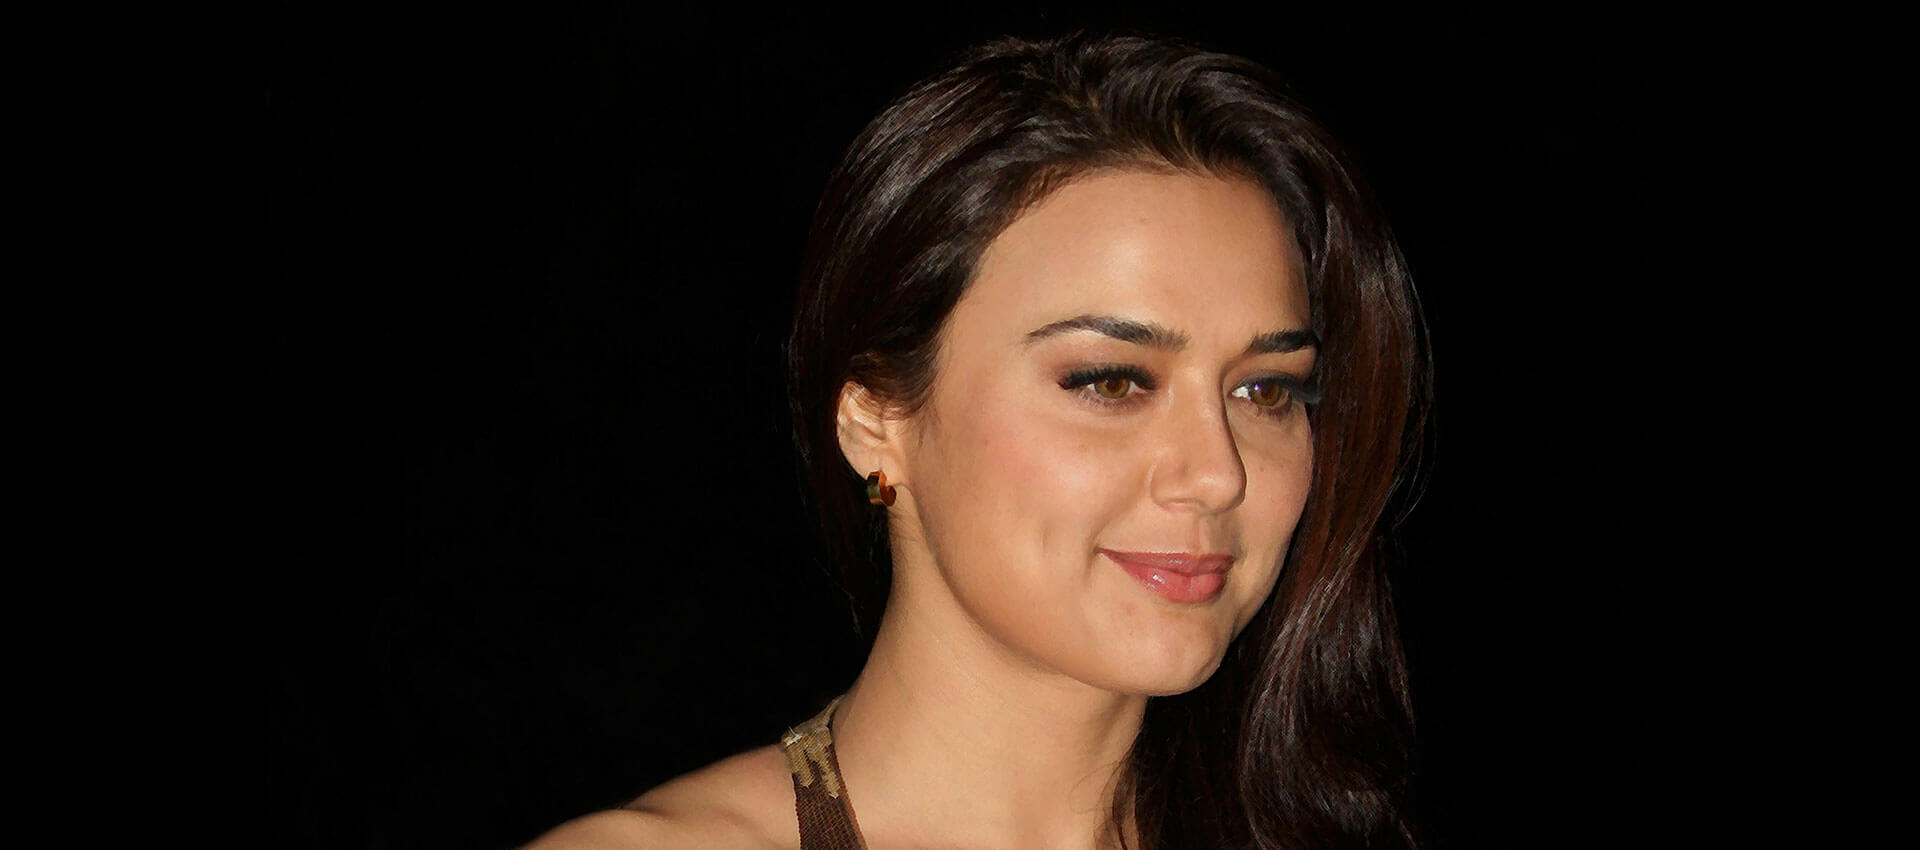 Preity Zinta Age, Husband, Photo(image), Height, Family, Marriage, Biography, Net Worth, Birthday Date, Kids, Education, Awards, Instagram, Wiki, Twitter, Imdb, Facebook (67)